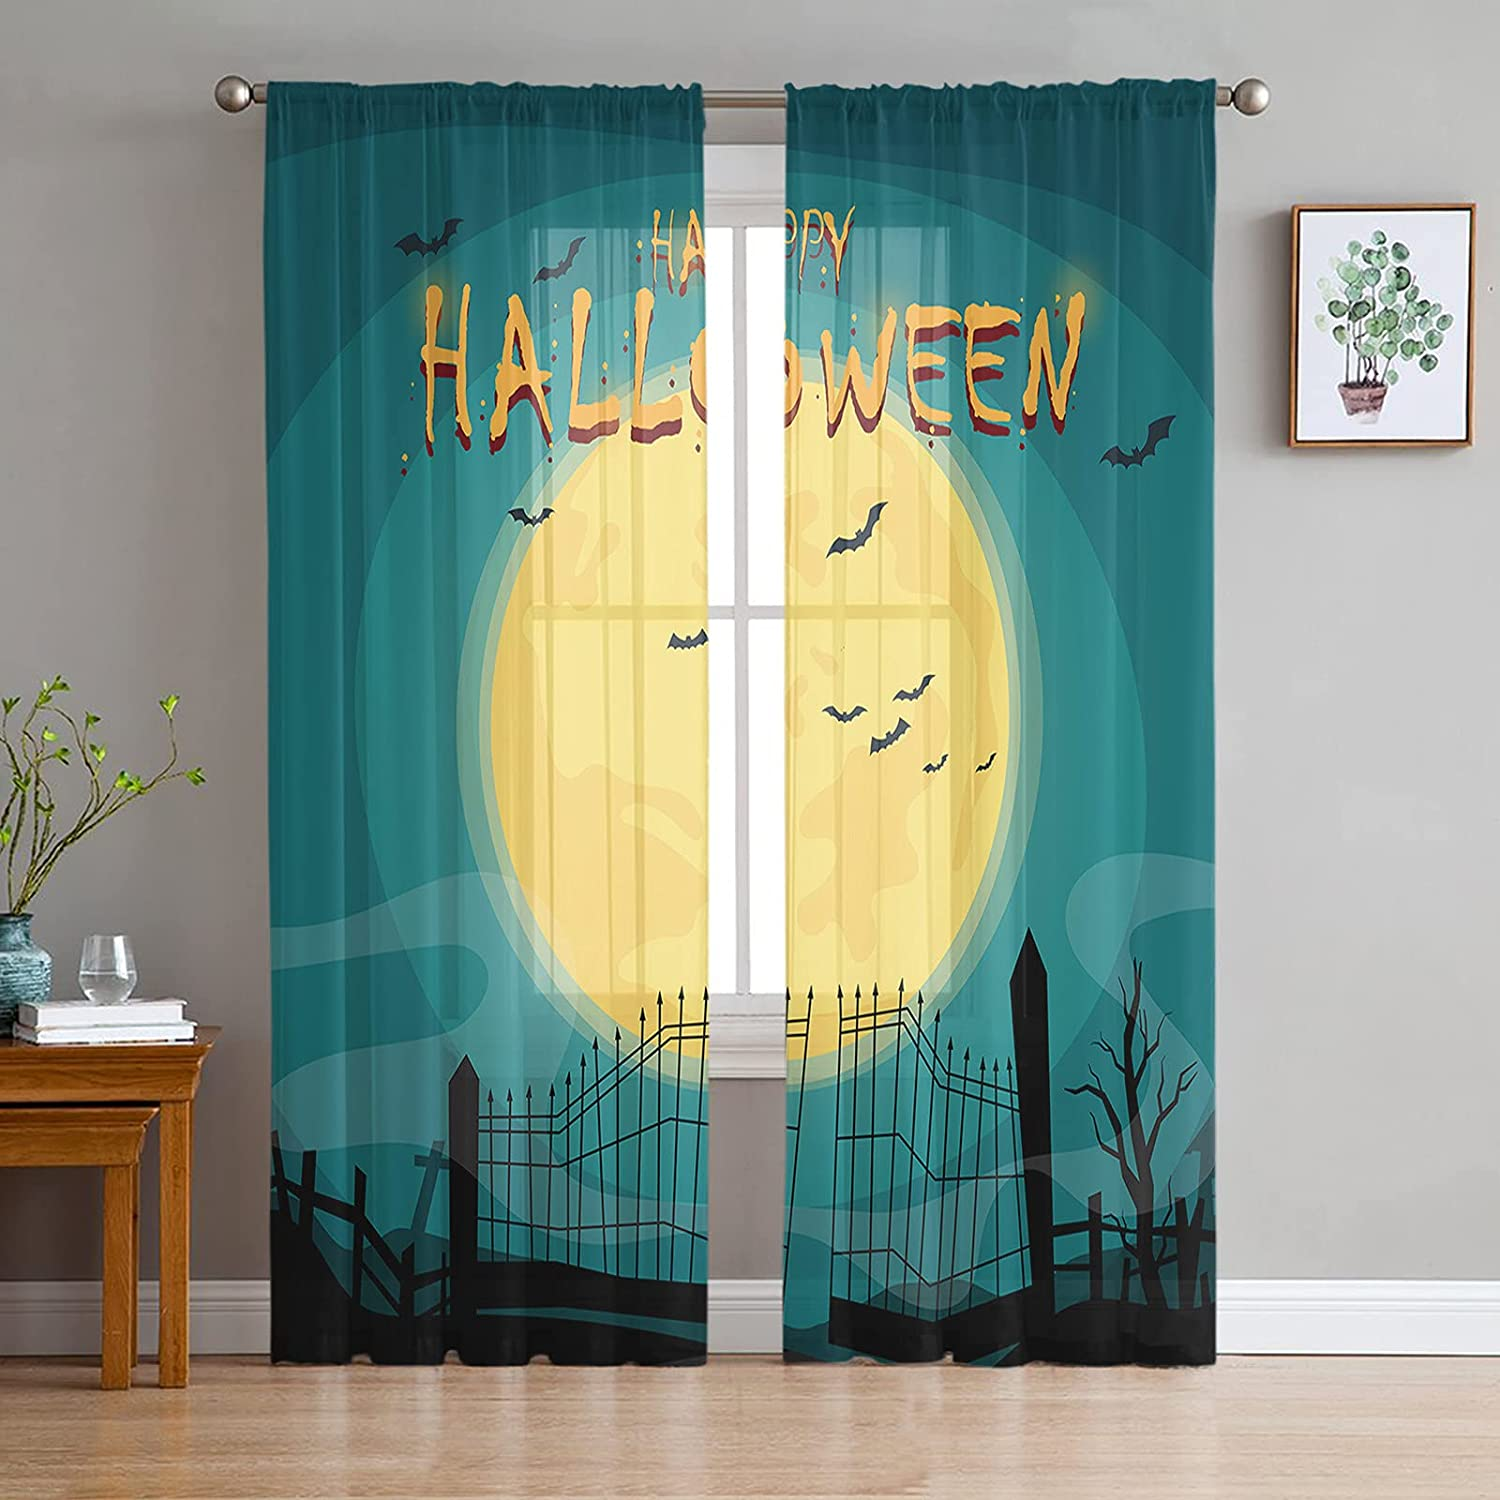 2 Direct store Panels Rapid rise Semi Sheer Voile Curtains Happy Halloween Nig Moon Full